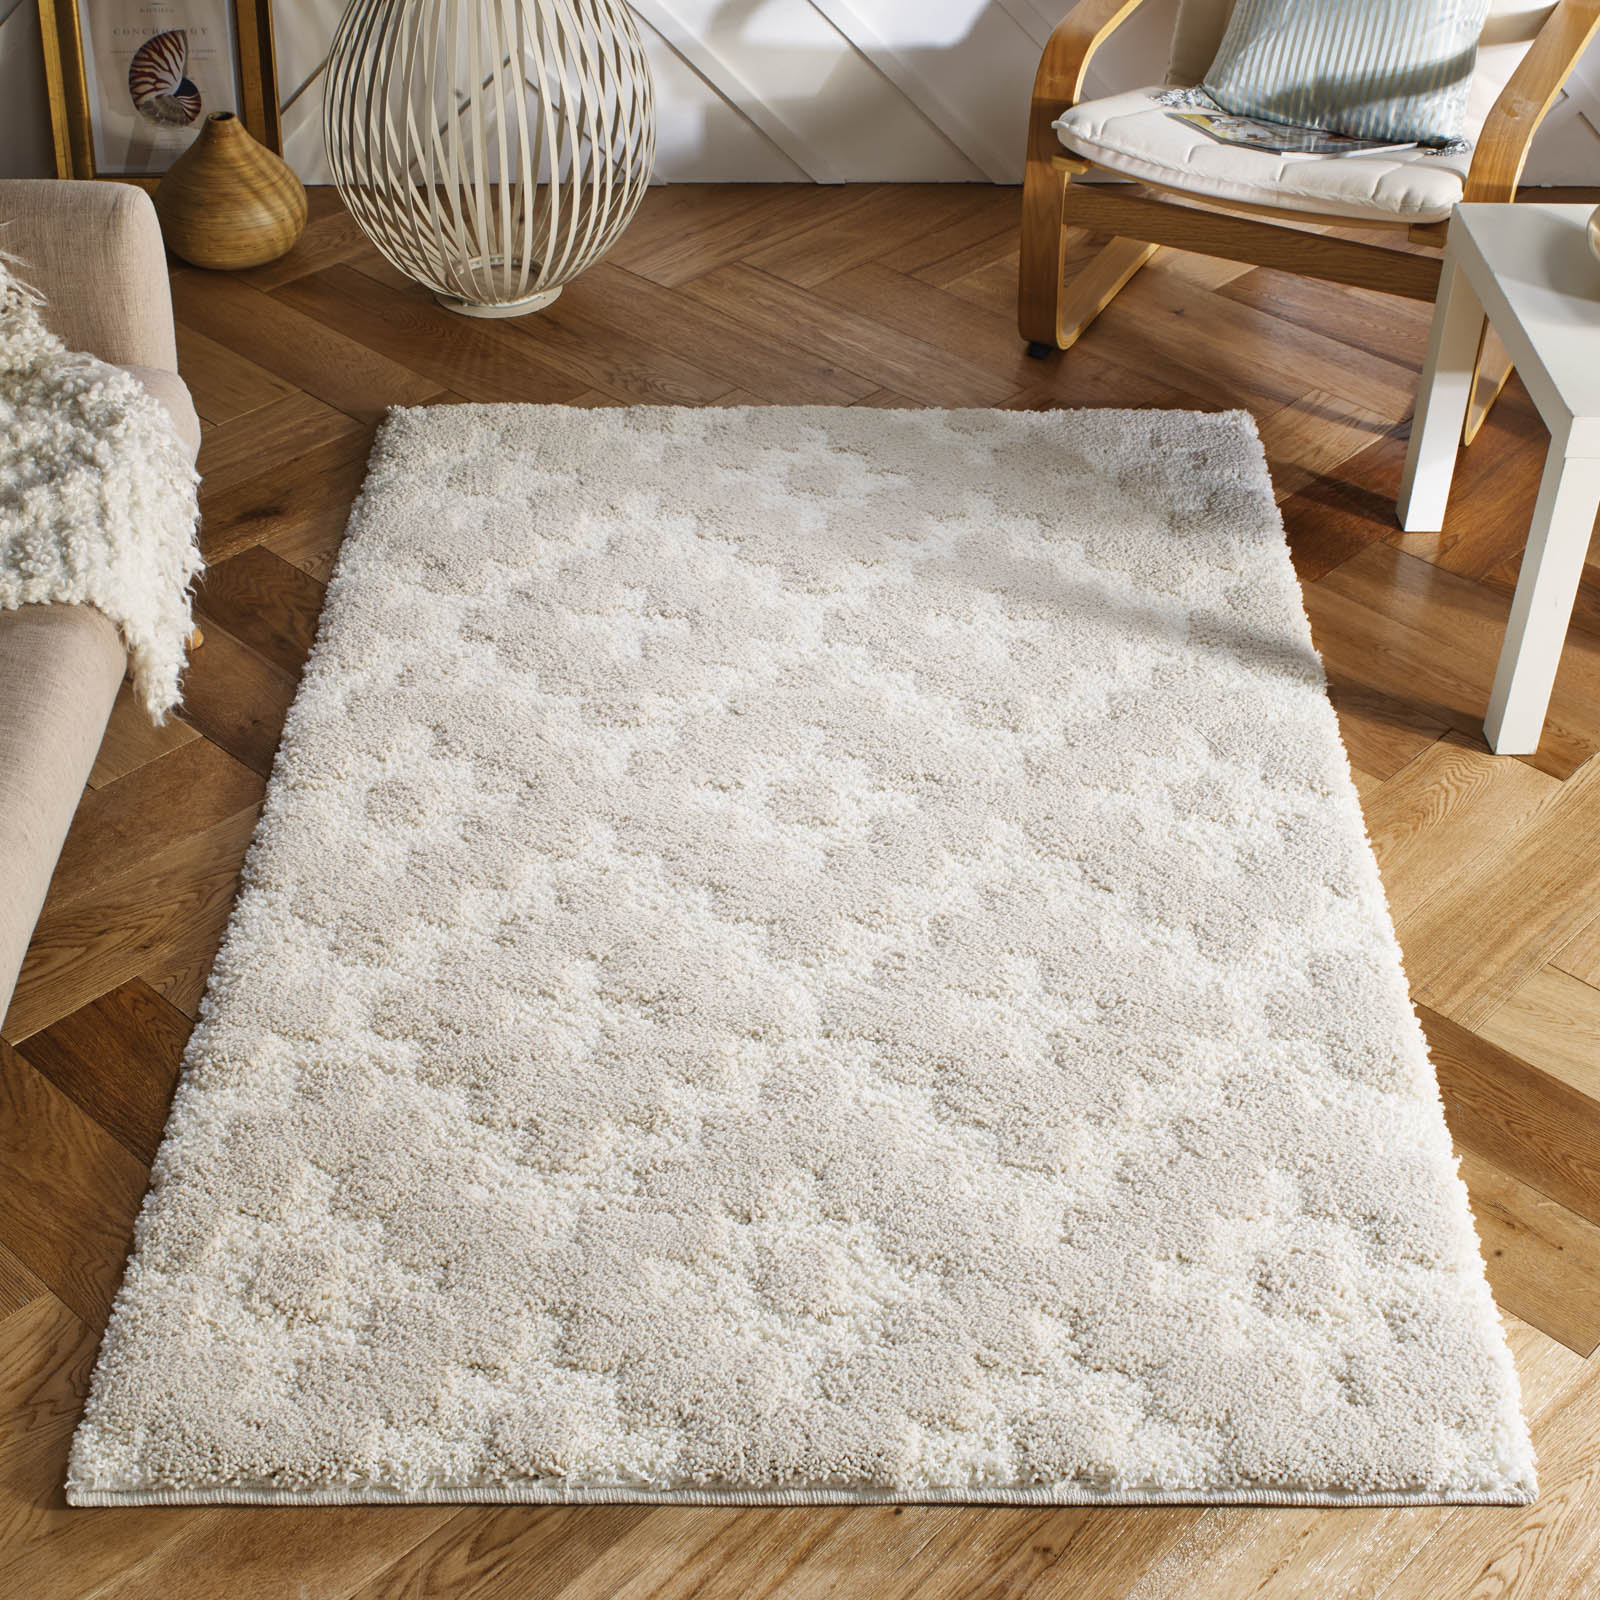 Symmetry Shaggy Rugs 1524W in Ivory